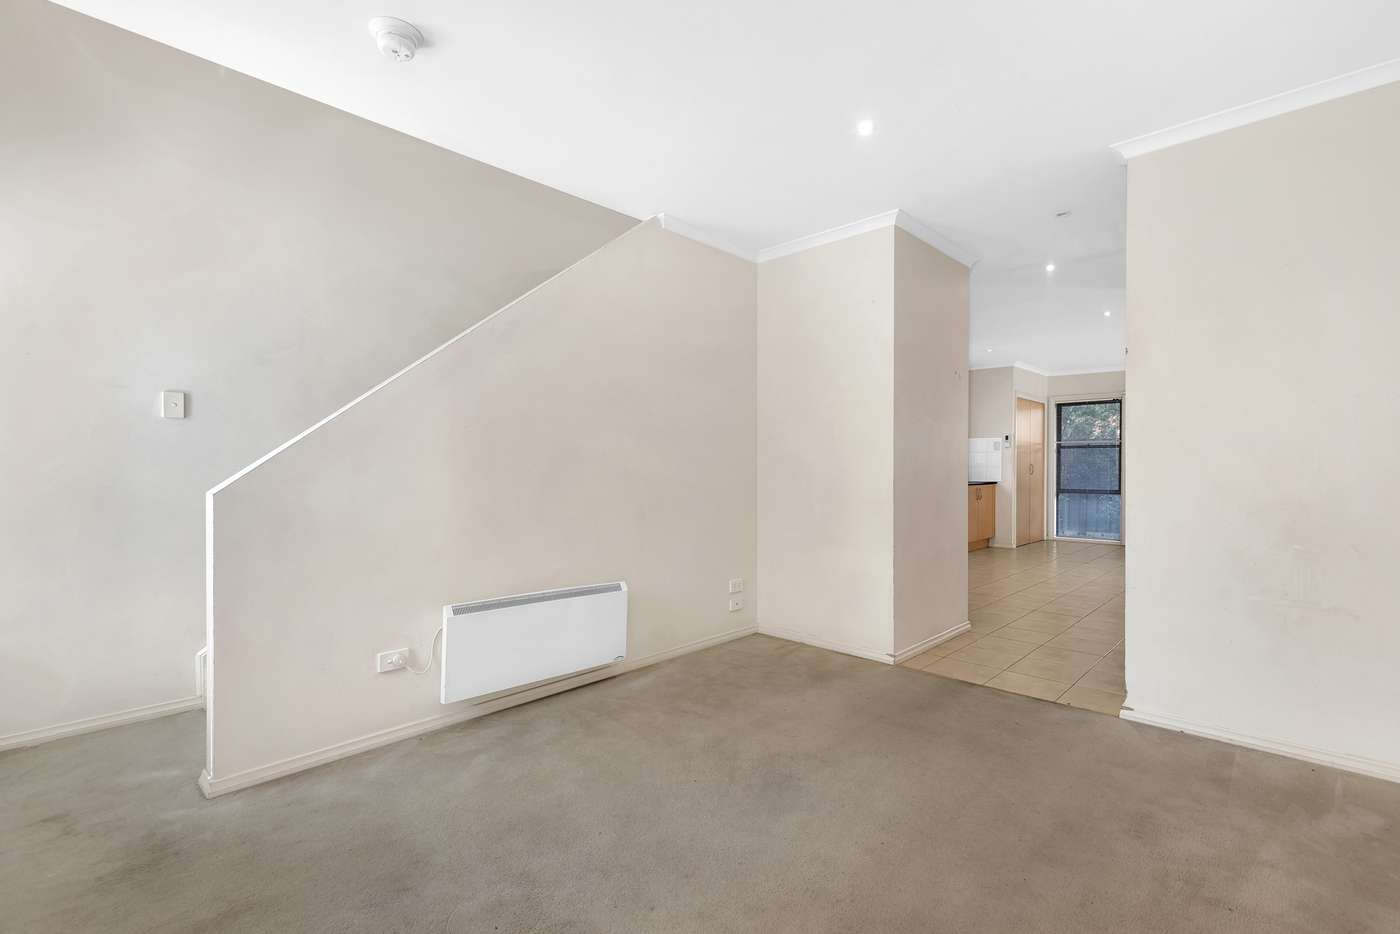 Sixth view of Homely townhouse listing, 1/8 Lauffre Walk, Caroline Springs VIC 3023